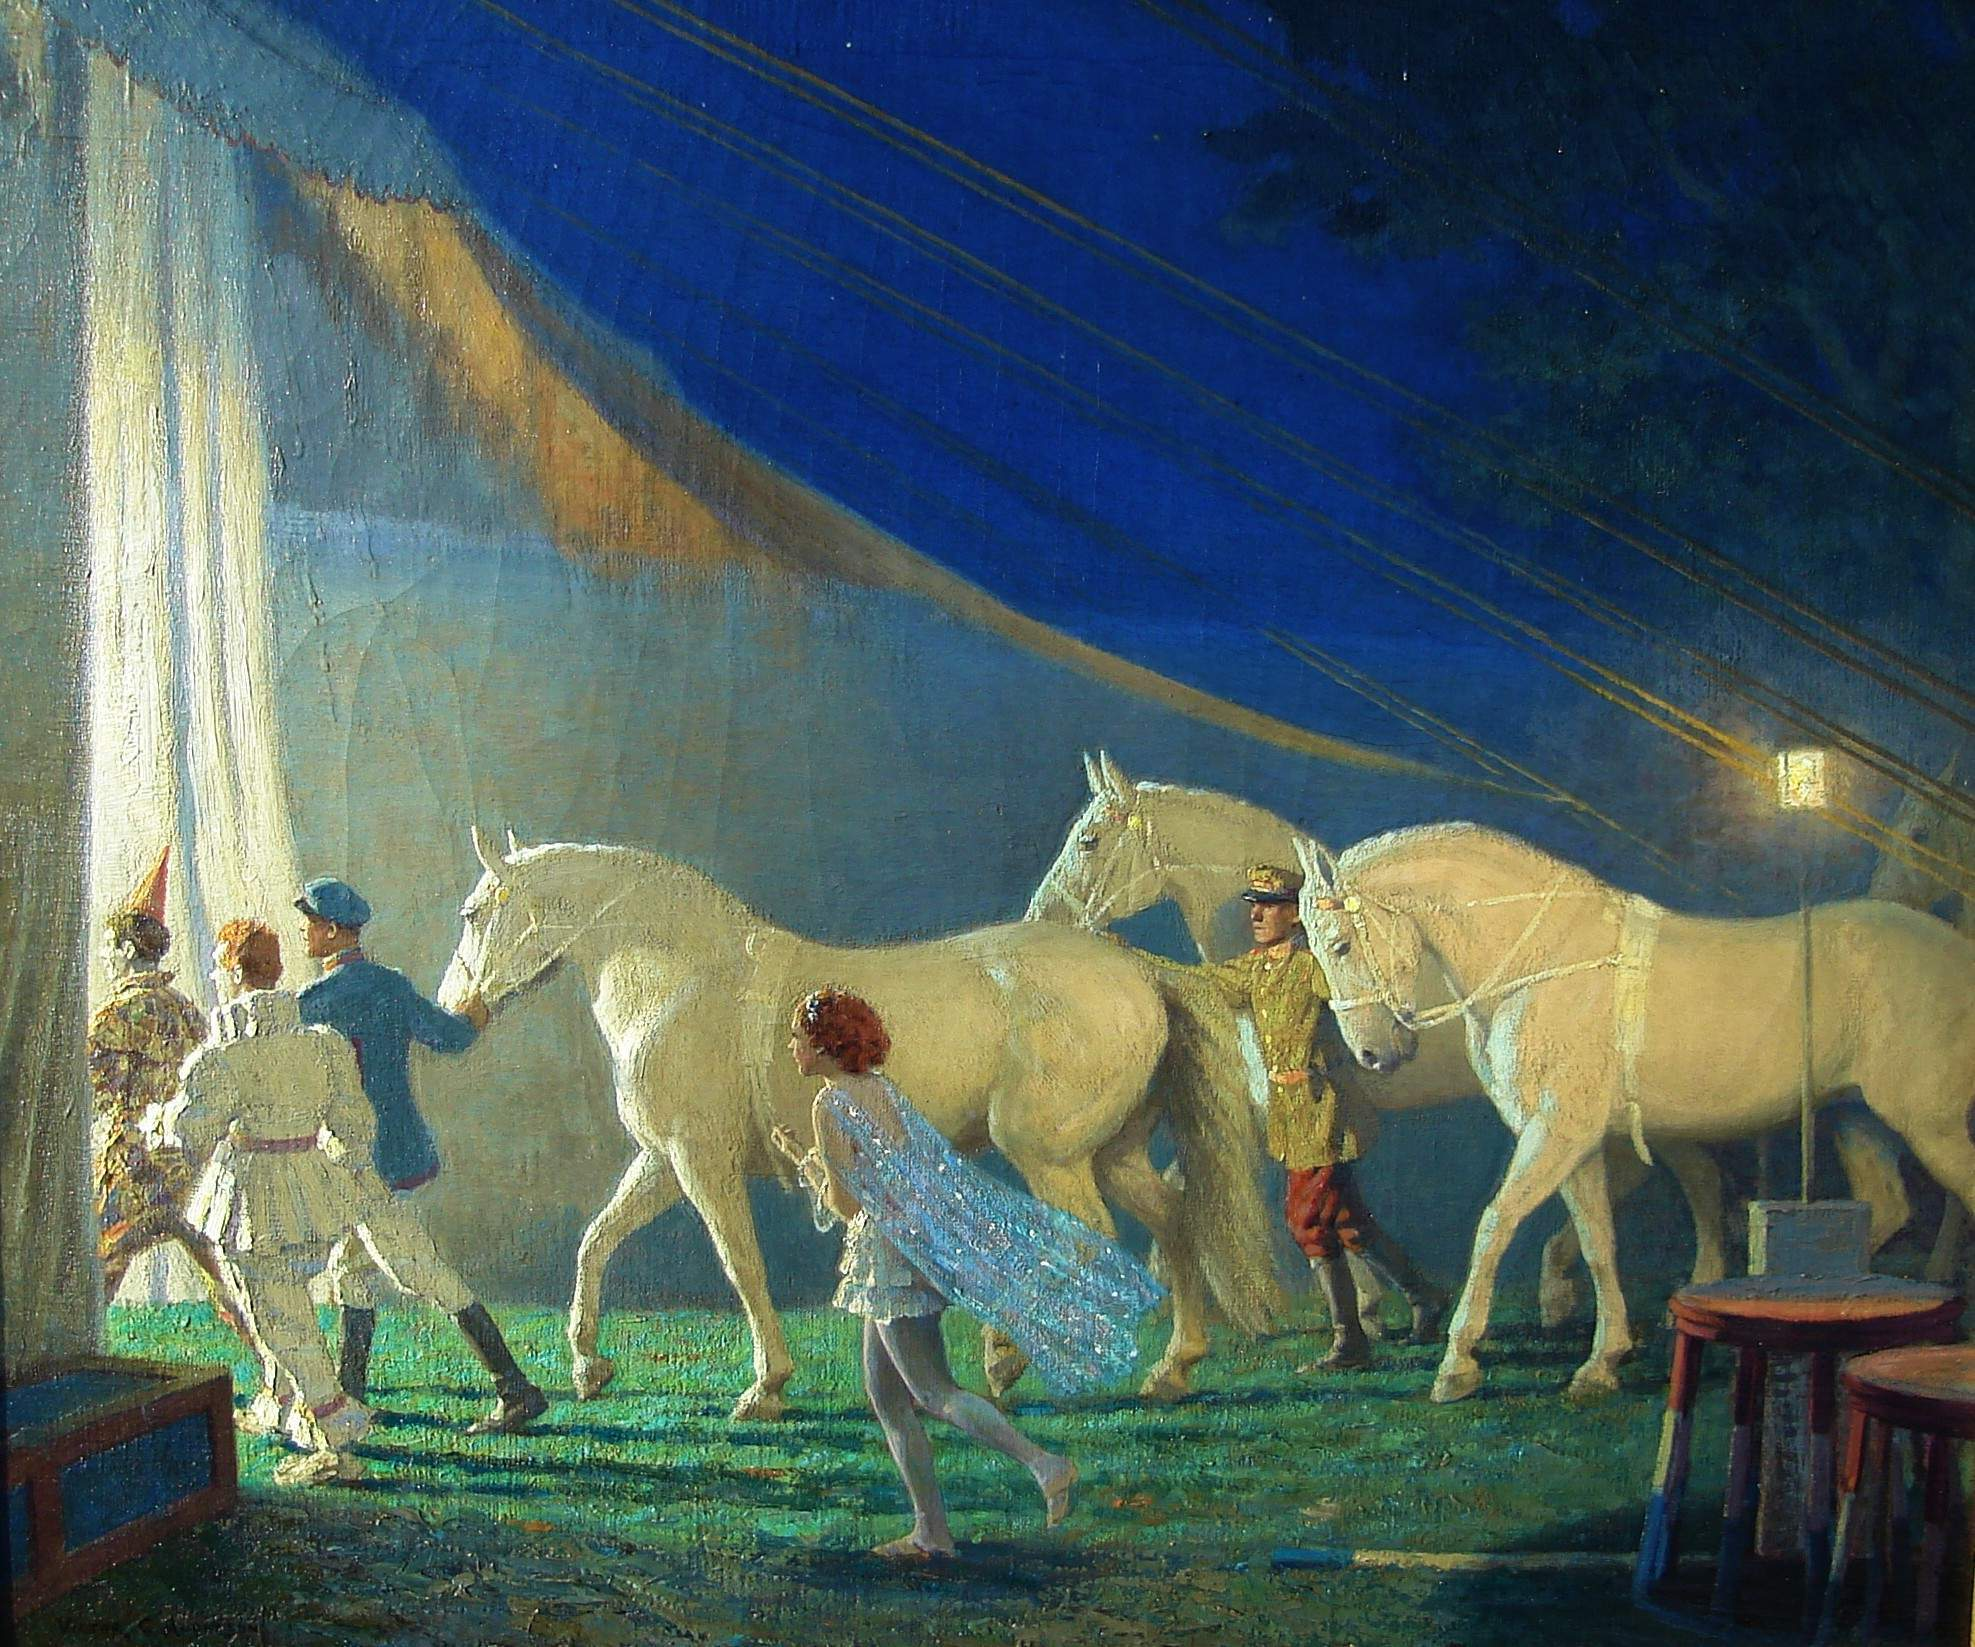 Victor Anderson (1882-1937) - Circus Performer